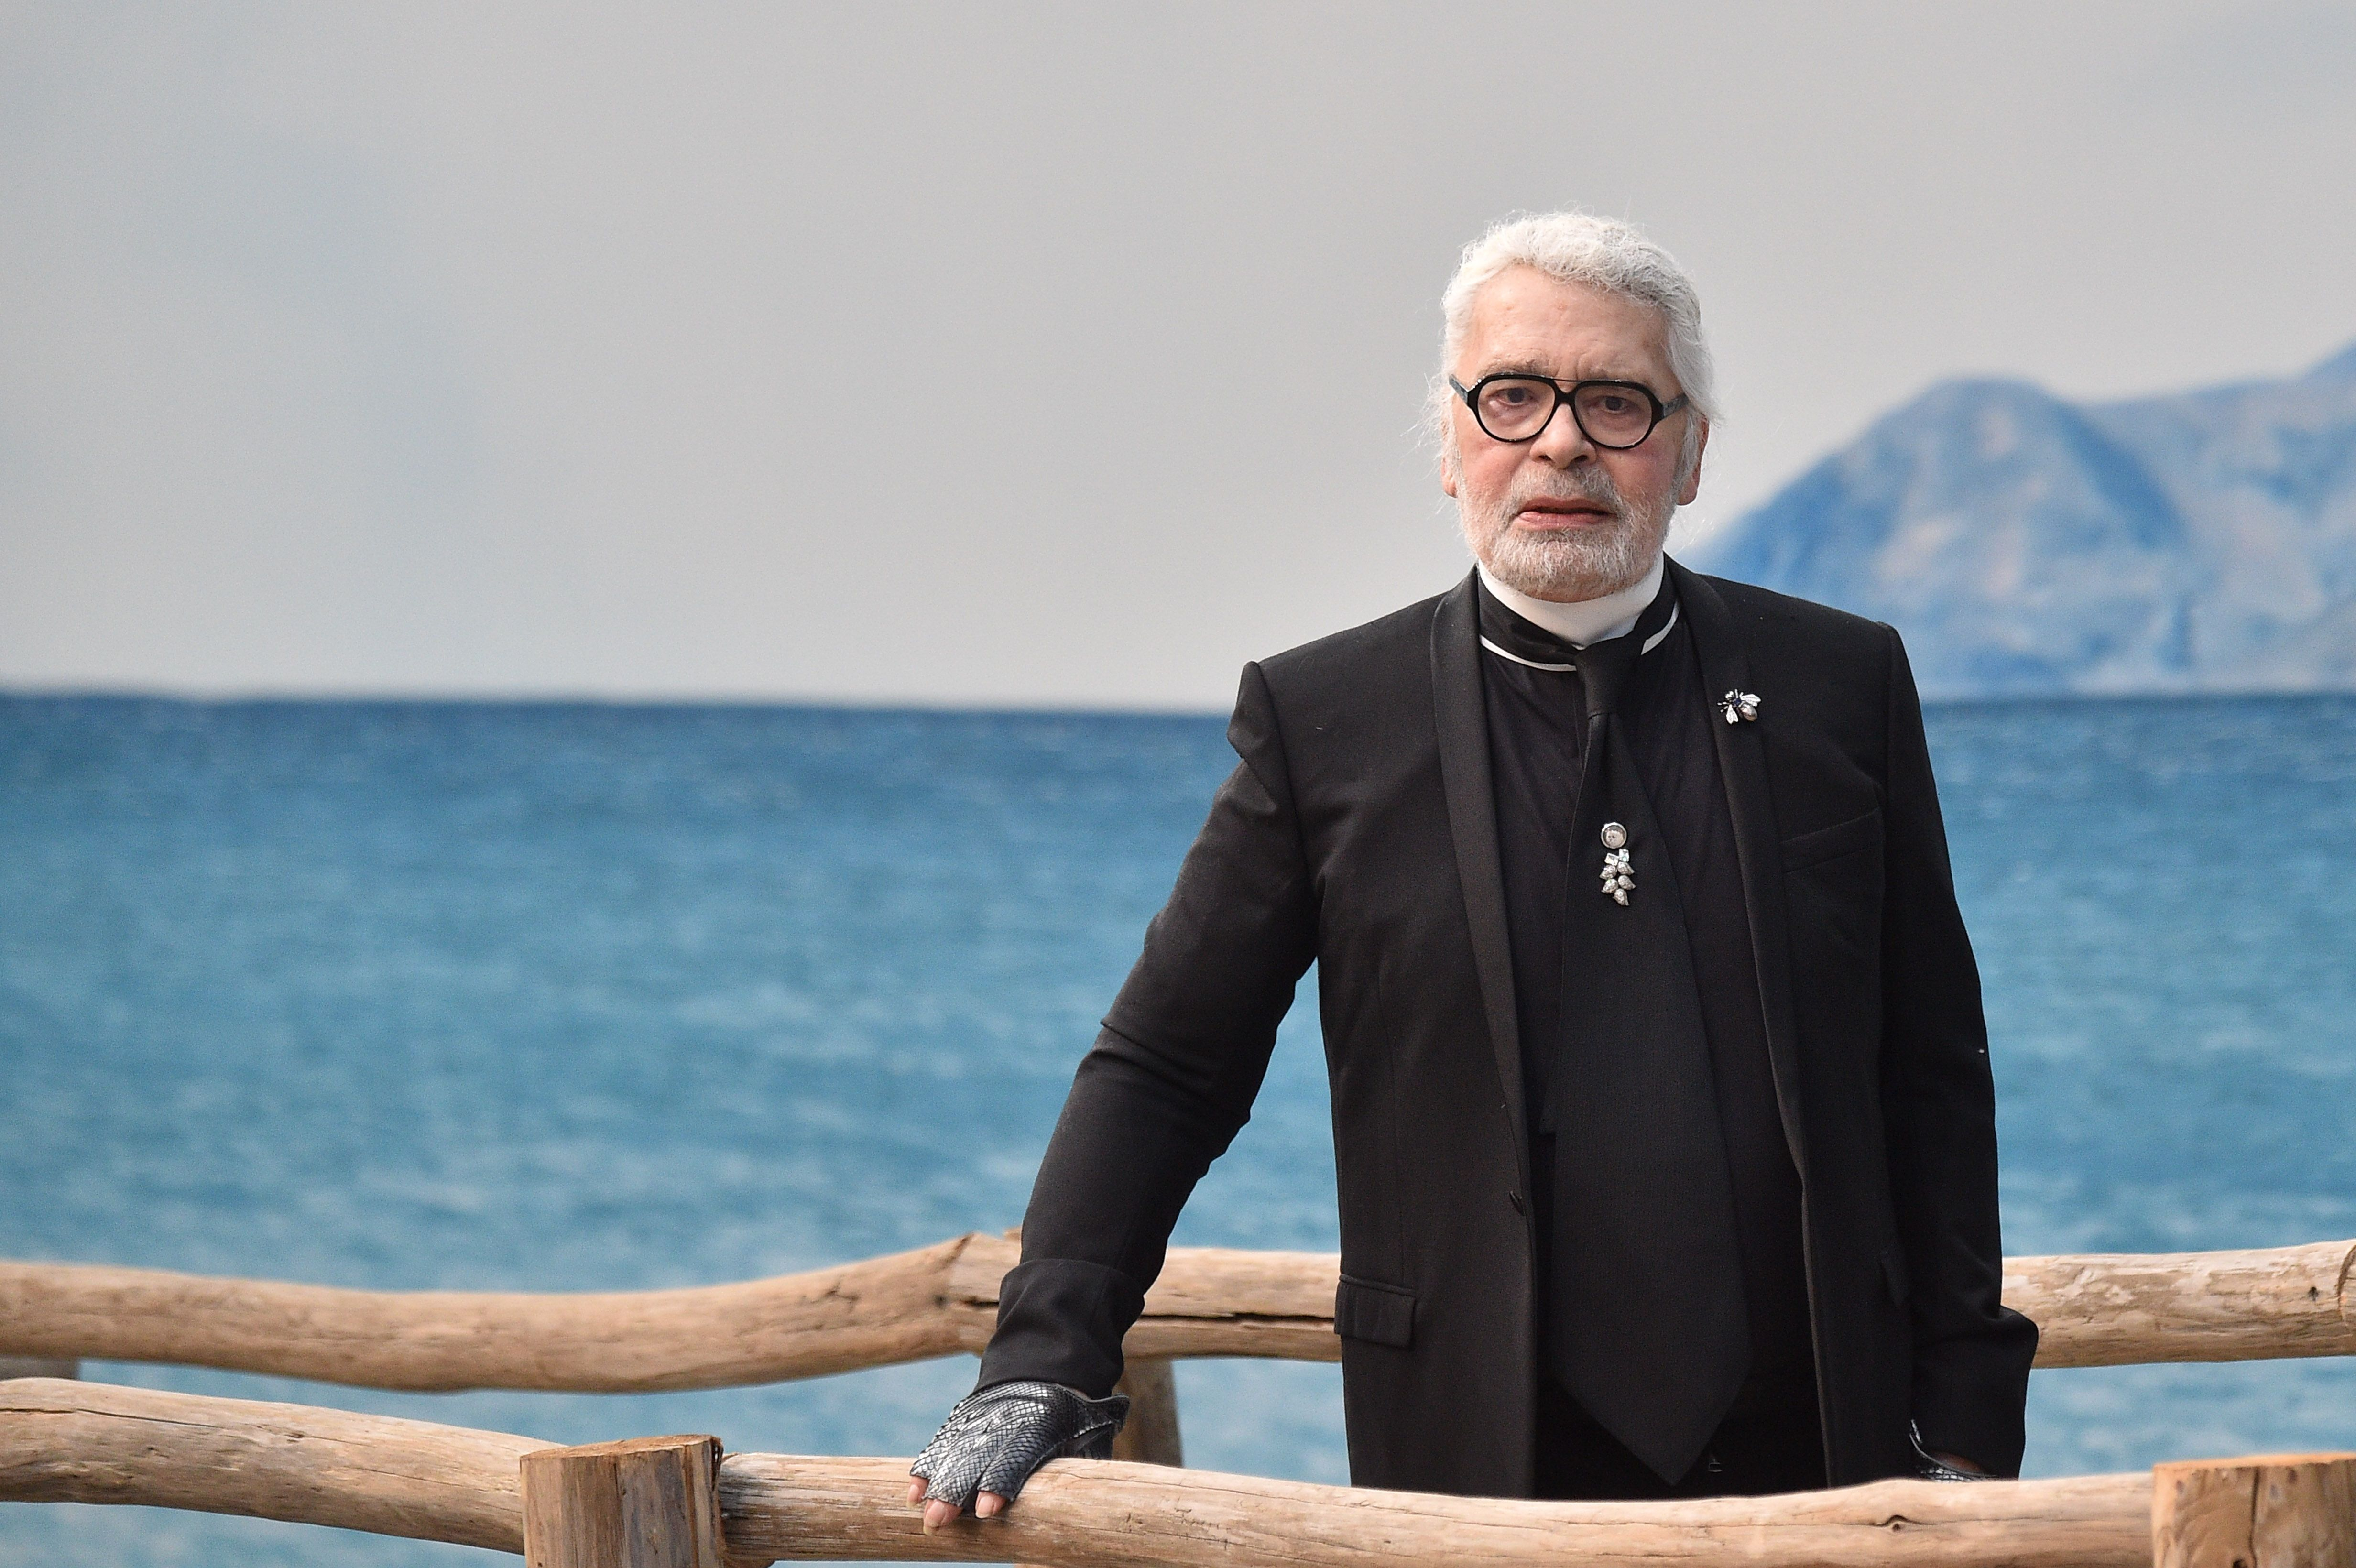 Karl Lagerfeld Obituary Fashion Designer Karl Lagerfeld Has Died At 85 In Paris